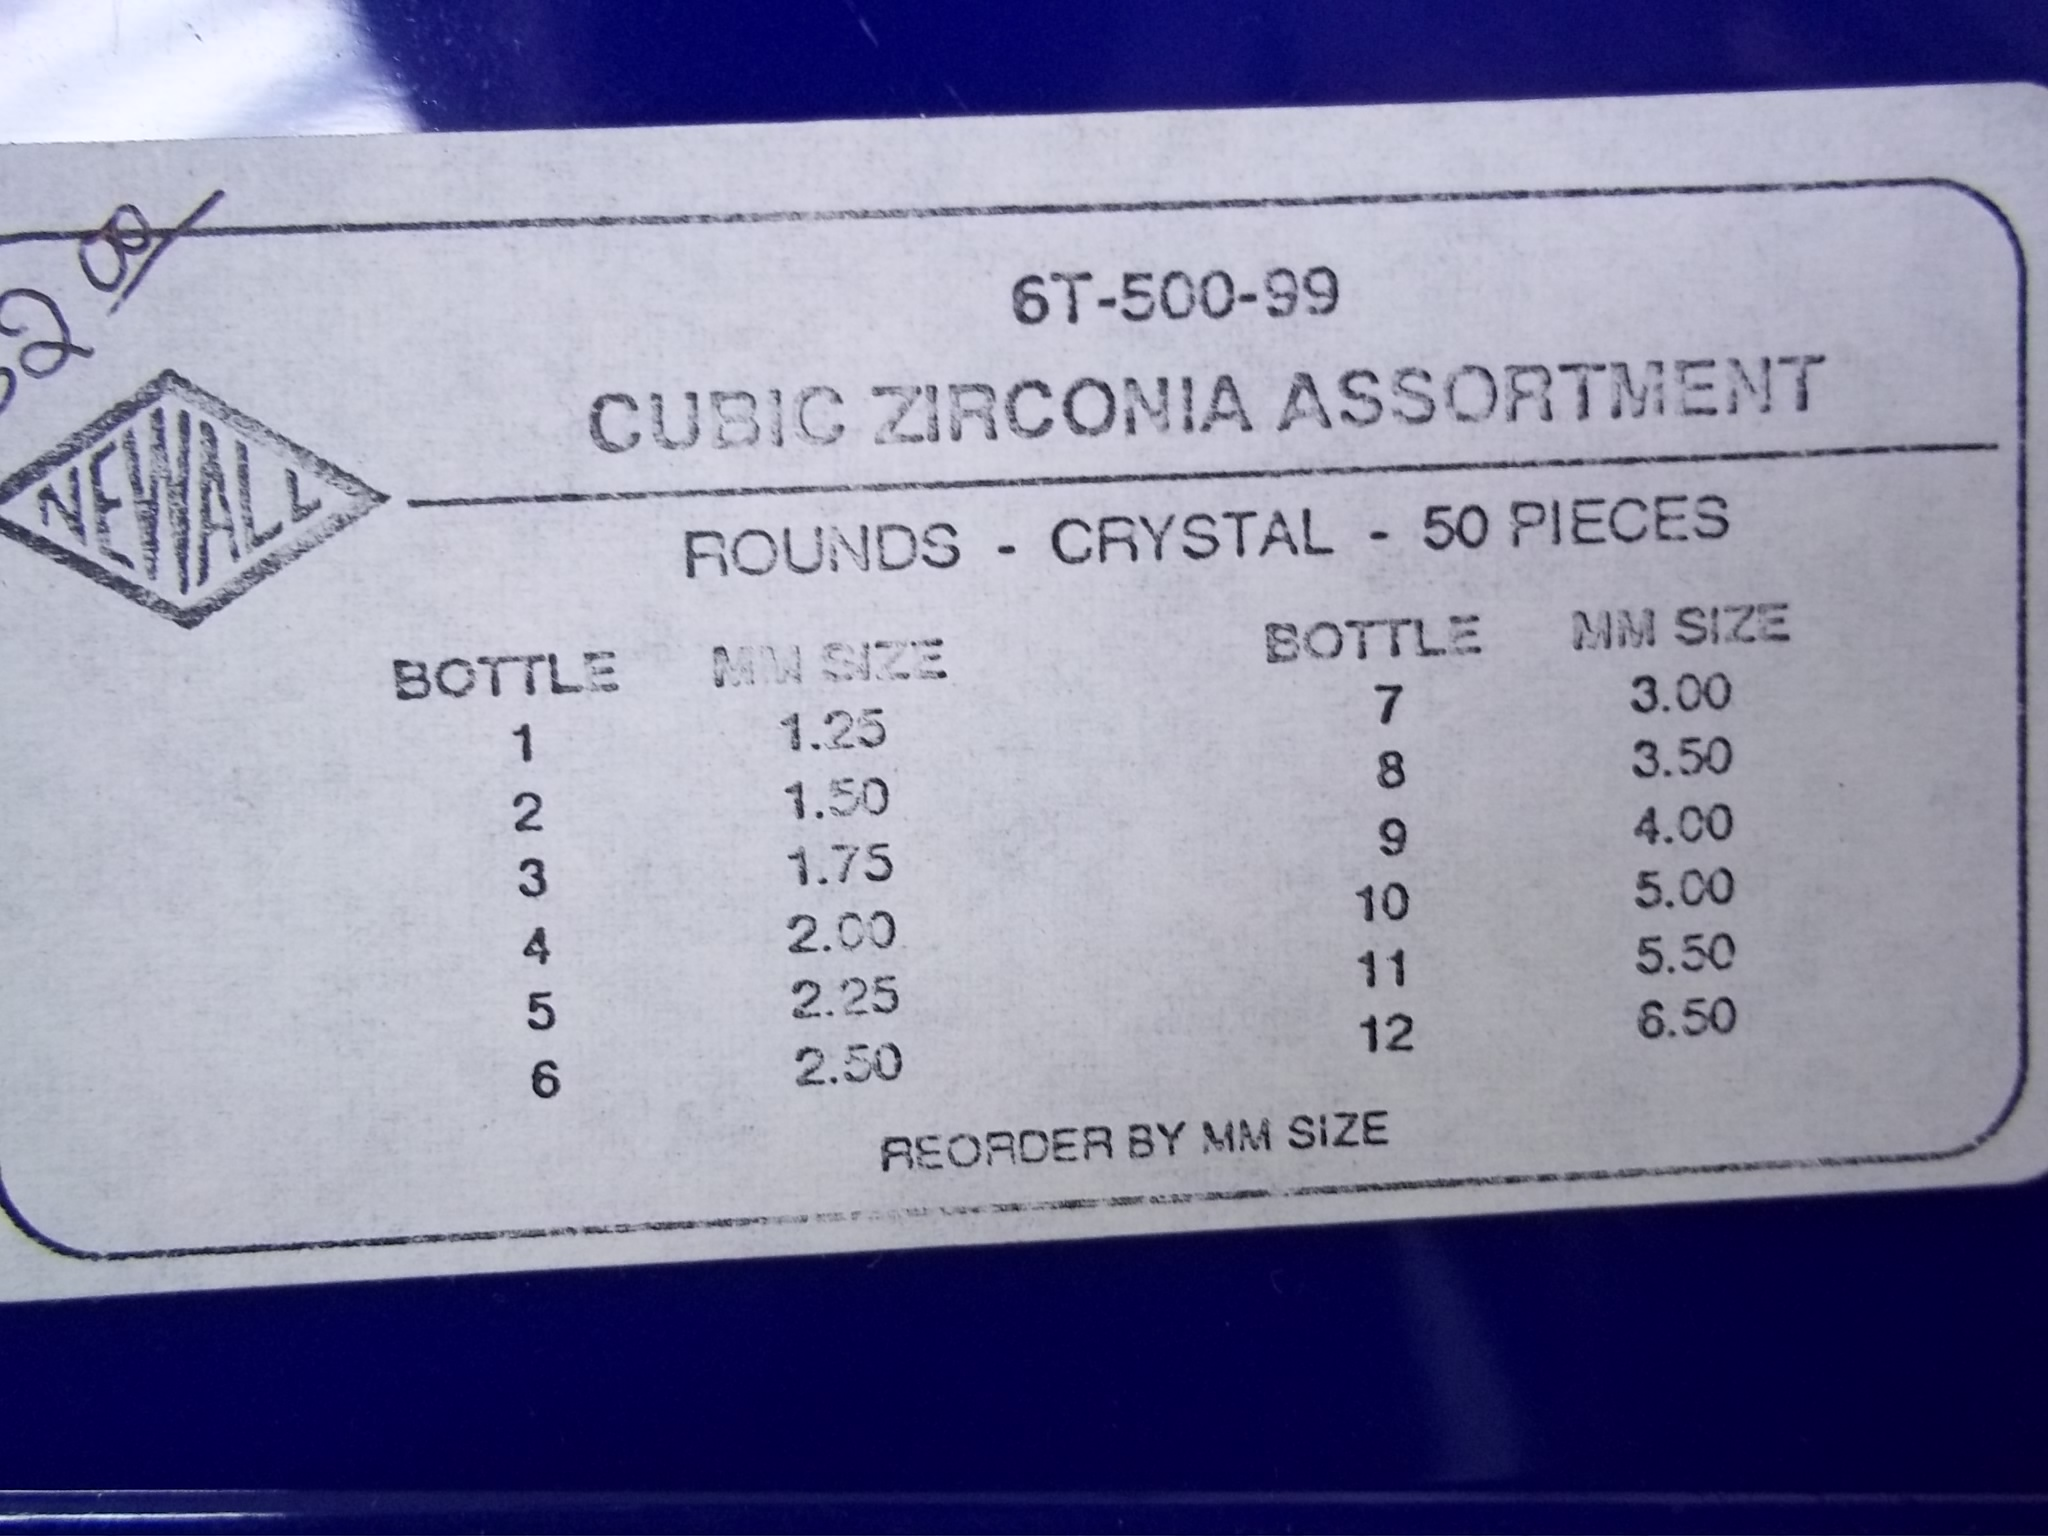 CZ-6T-500-99 Cubic Zirconia 50 Piece Assortment-Crystals-Round